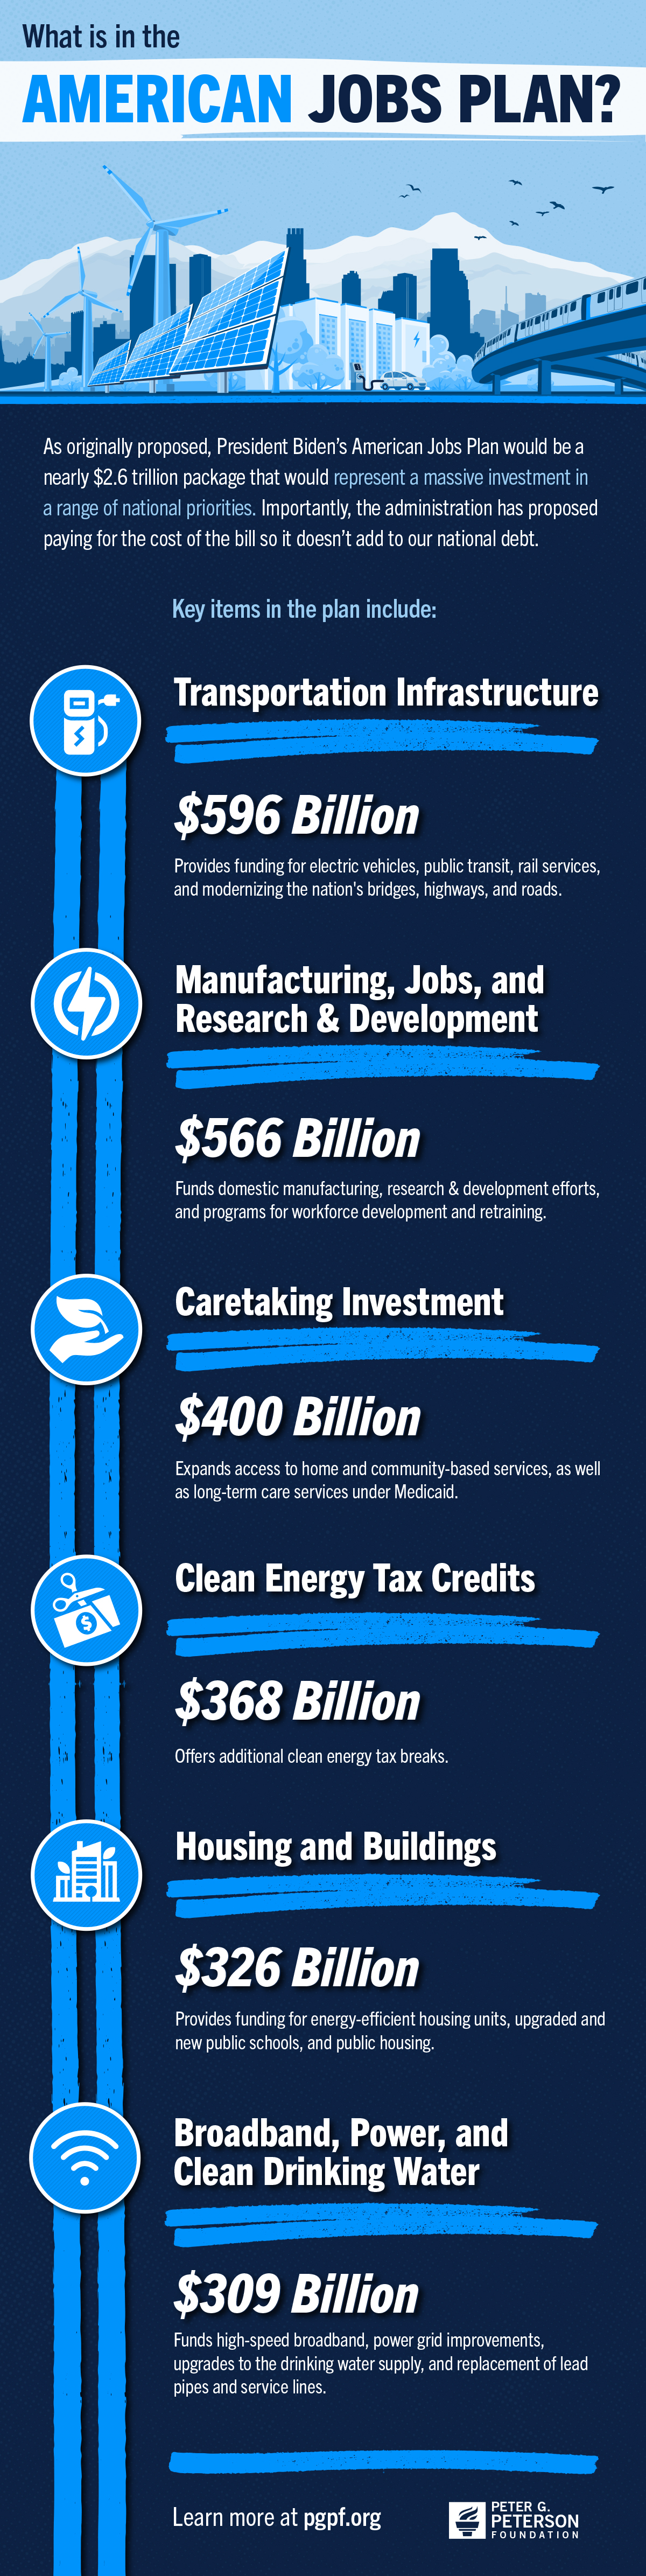 In March, President Biden released details for the proposed American Jobs Plan. It would be a massive investment in a range of national priorities including transportation, climate change, caregiving, and housing.